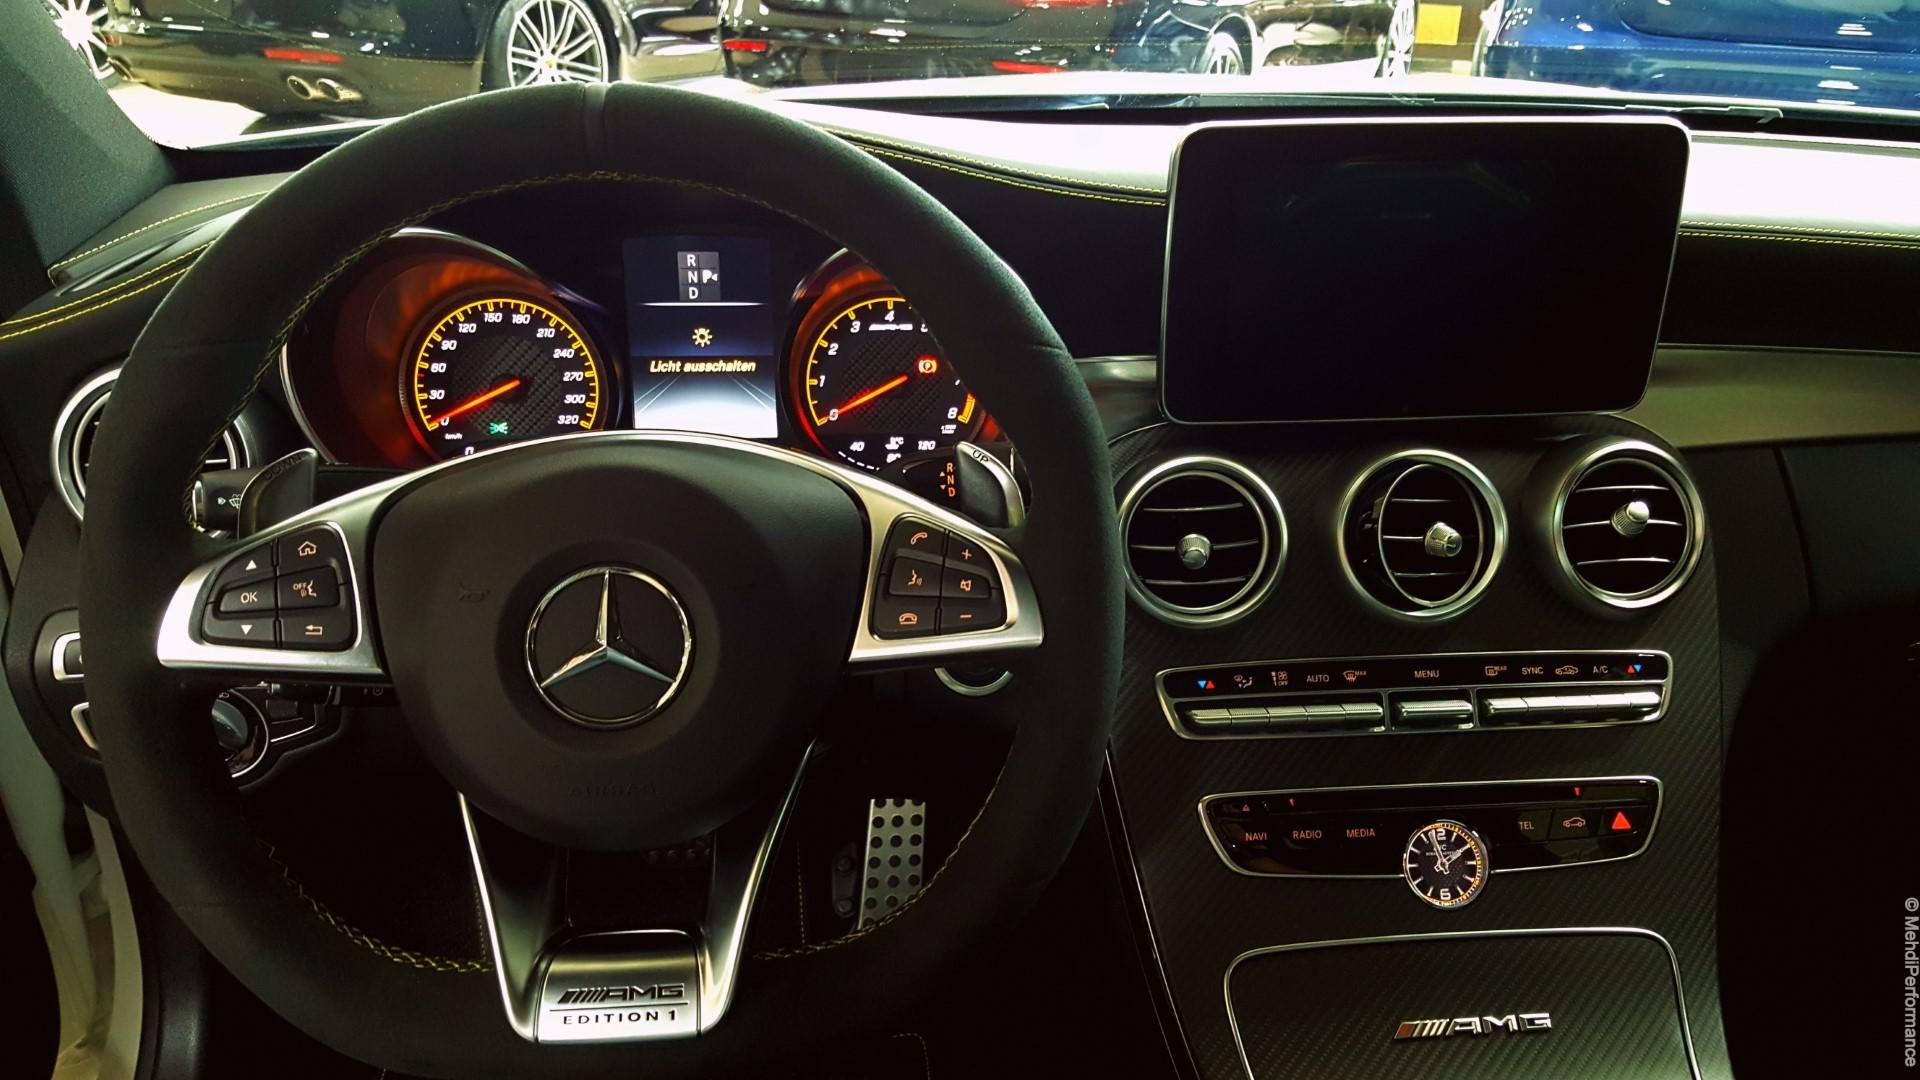 mercedes-amg-c-coupe-63-s-serie-edition-1-332-7.jpg